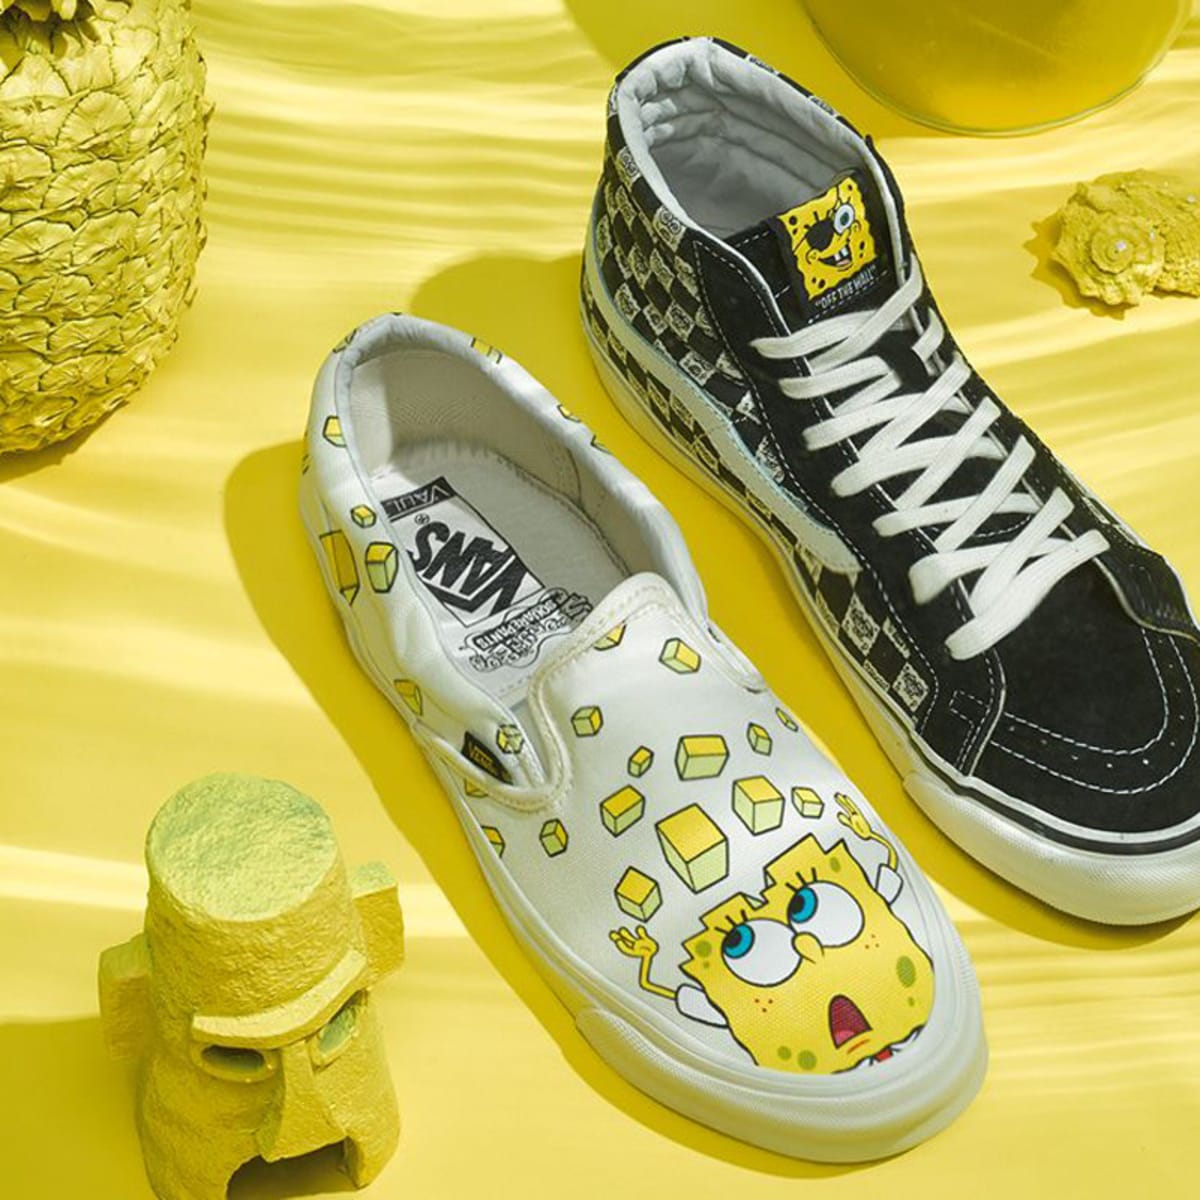 Vans and Nickelodeon Join Forces on a SpongeBob SquarePants ...